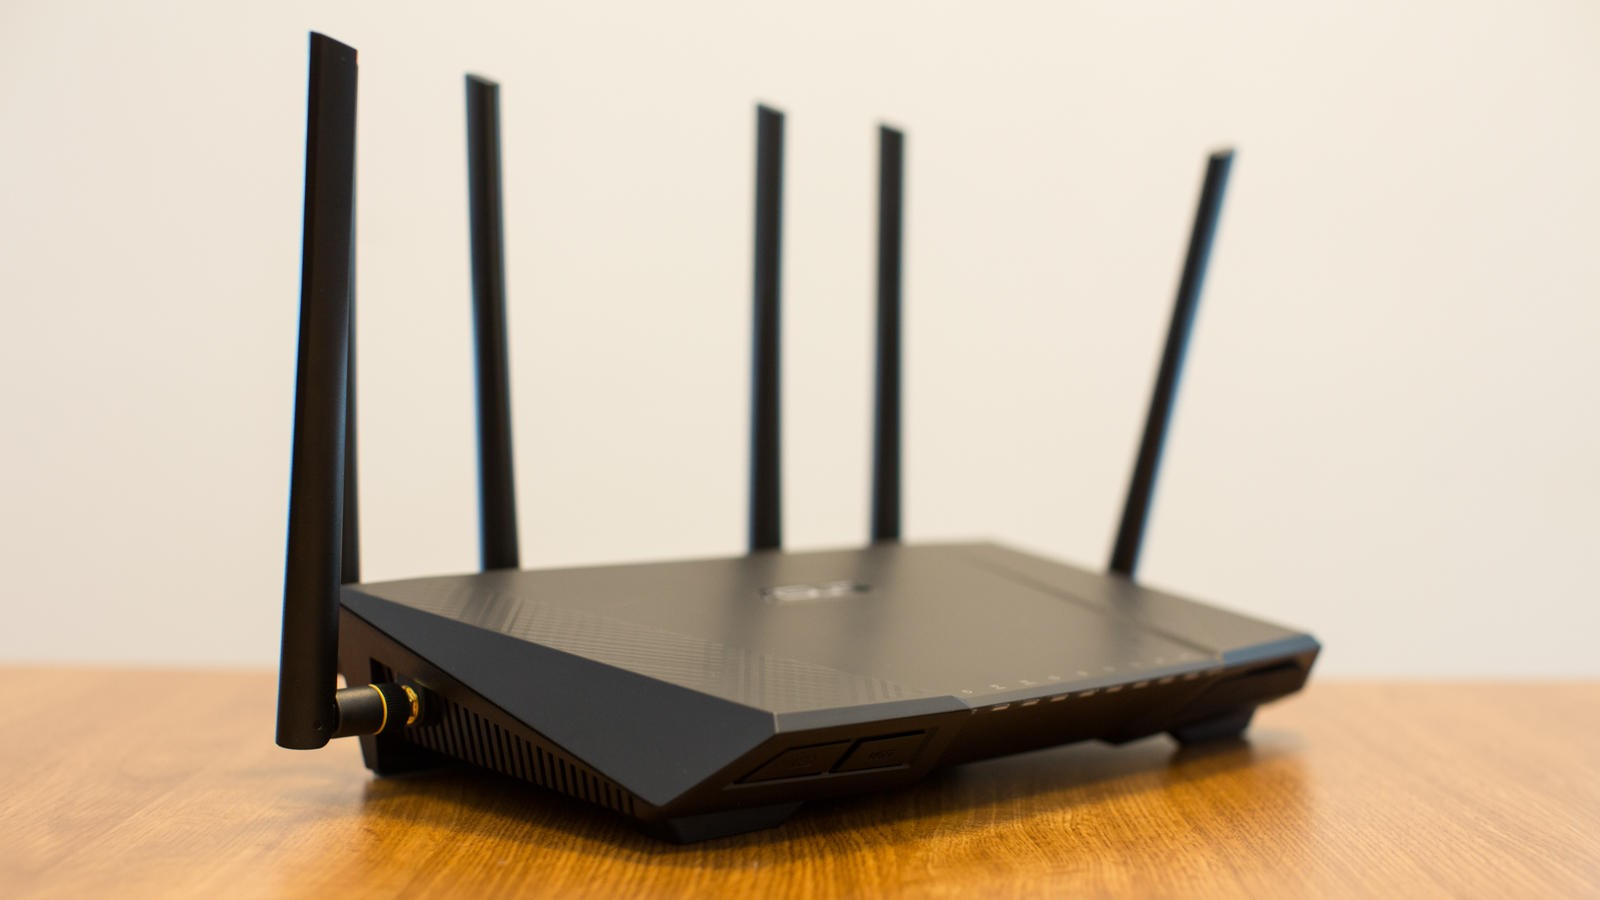 Firmware 3 0 0 4 380 3479 Is Available for ASUS RT-AC3200 Routers